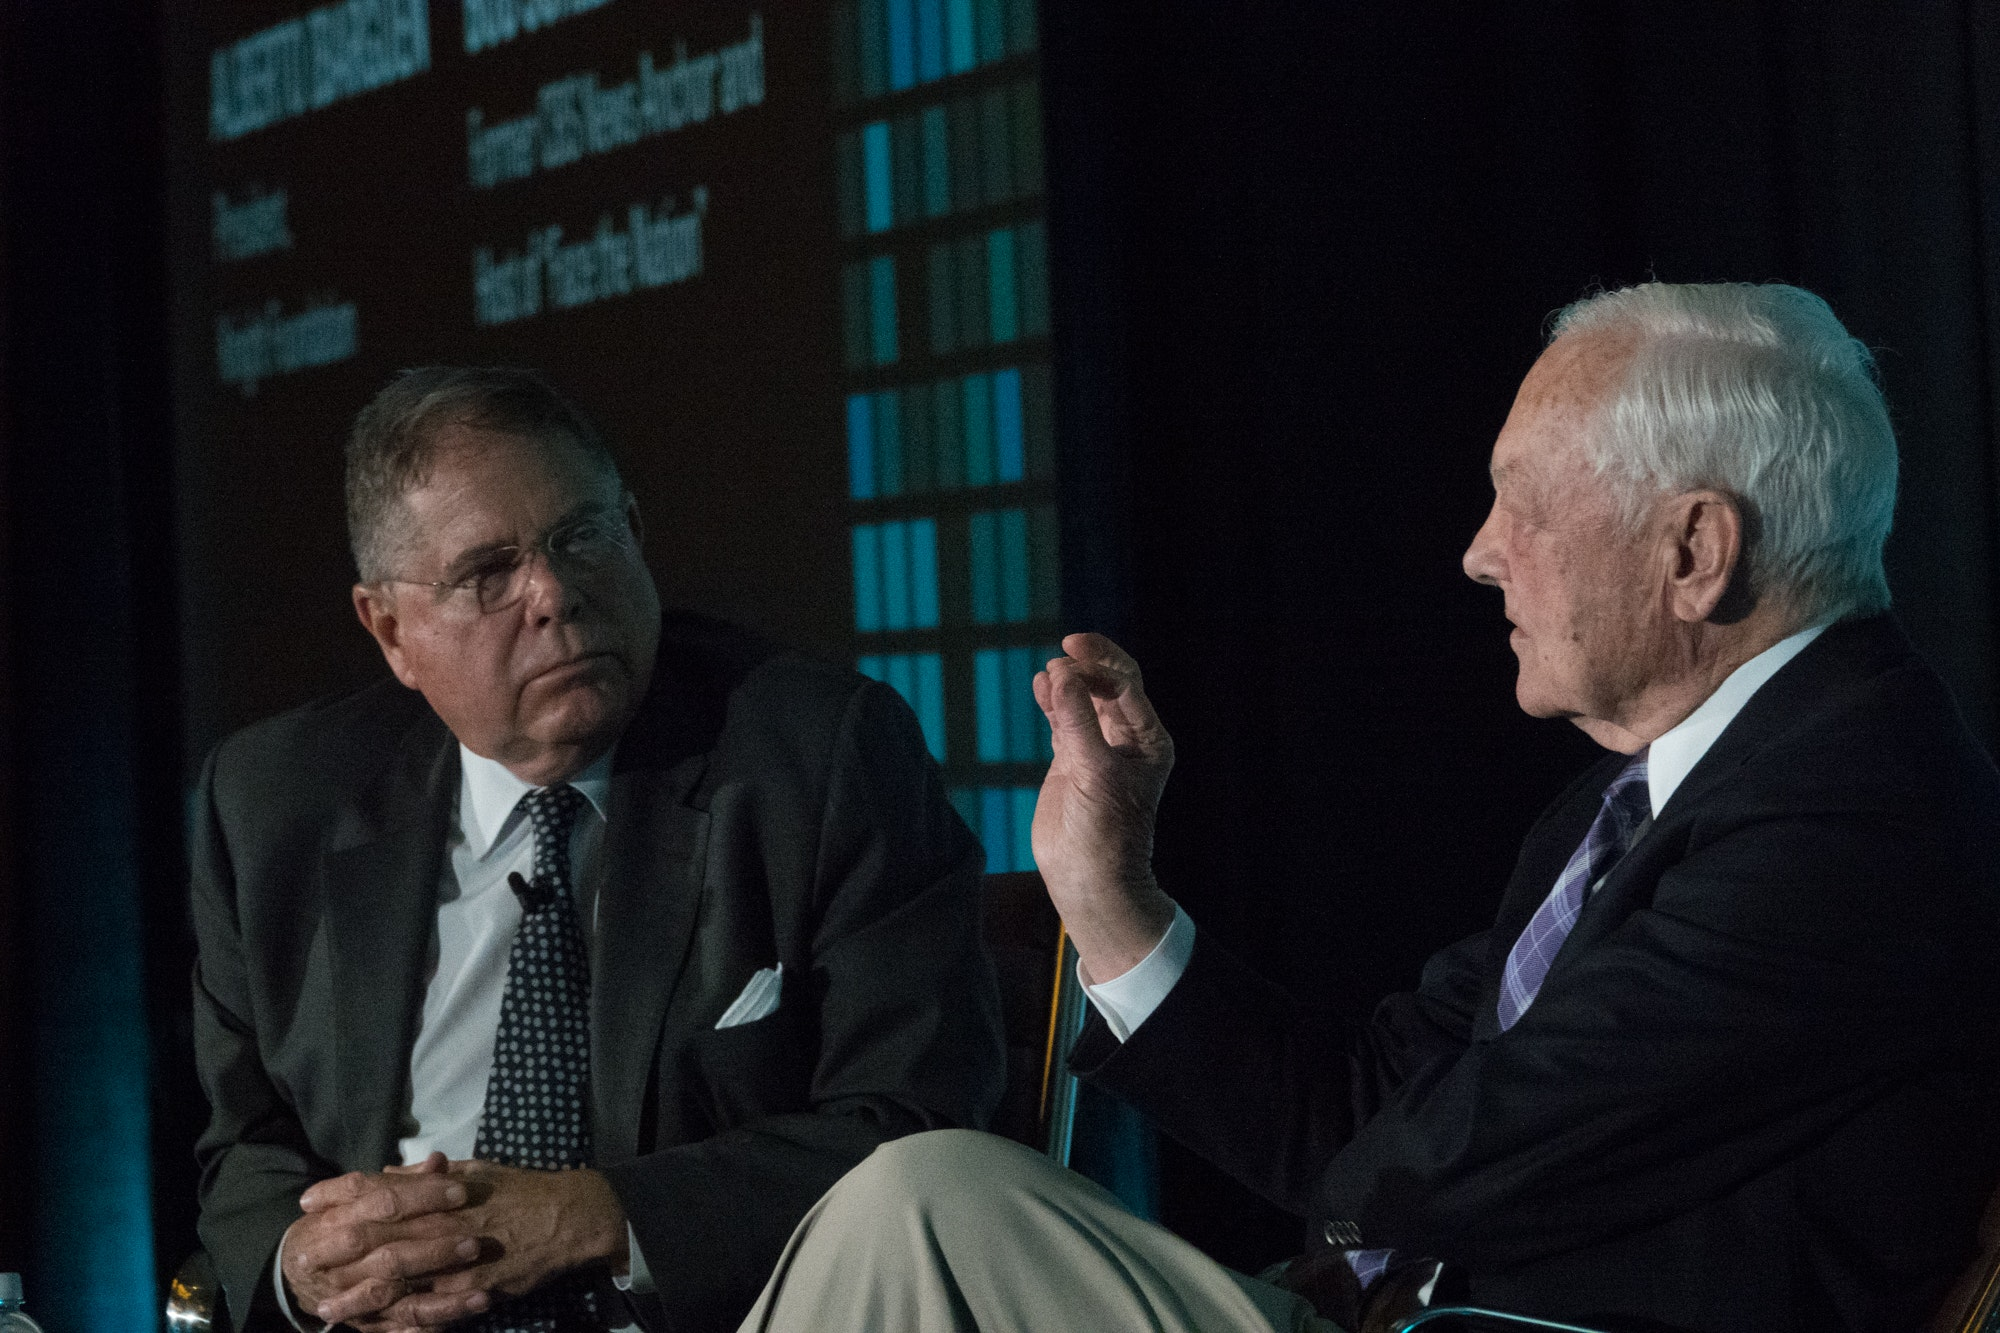 <p>Knight Foundation President Alberto Ibargüen listens attentively as veteran newsman Bob Schieffer discusses other times in history when technological advancement was followed by a period of disruption. Photo: Angel Valentin</p>